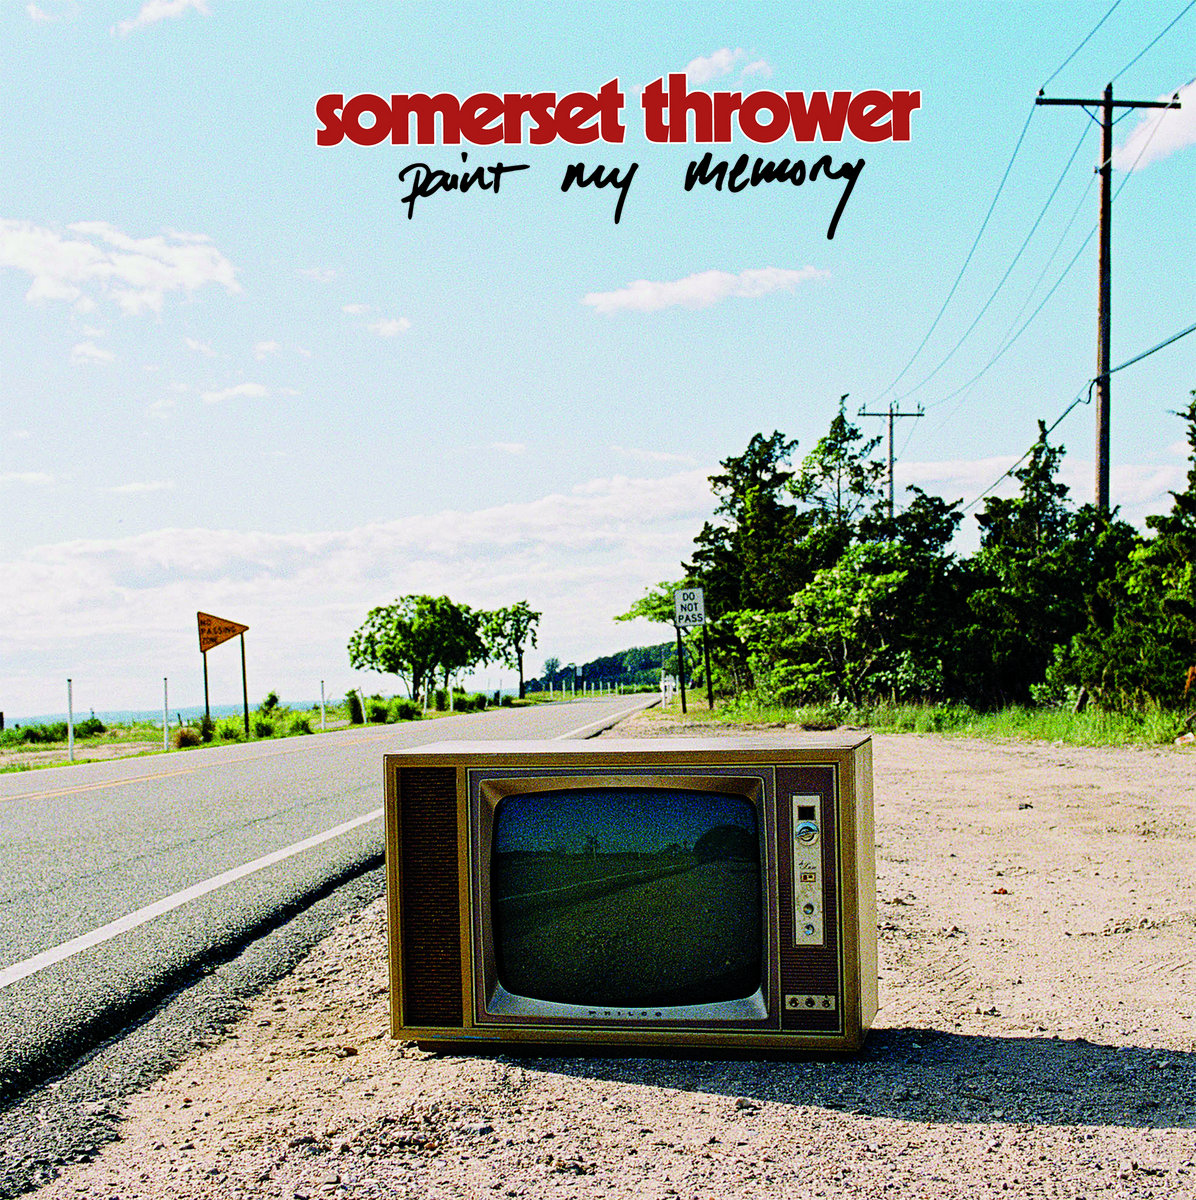 Somerset Thrower - Paint My Memory LP